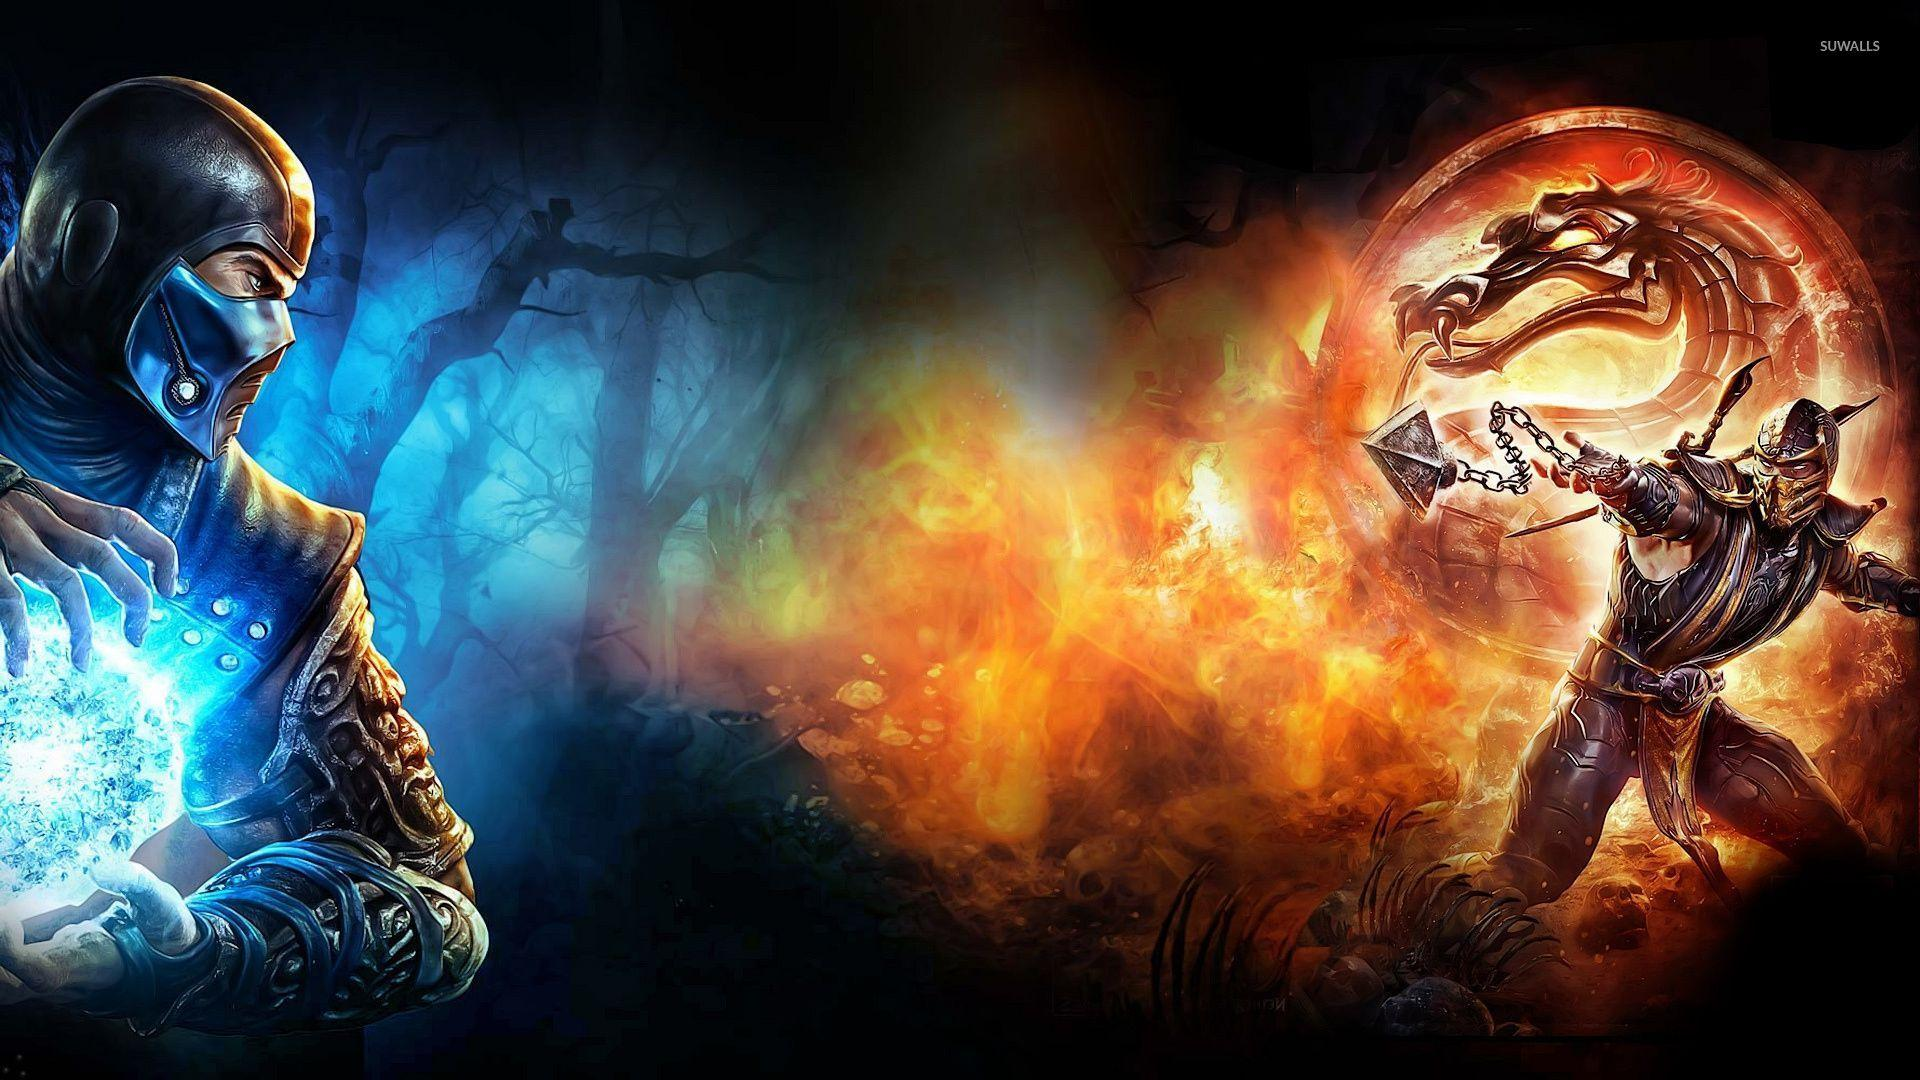 Mortal Kombat Scorpion Vs Sub Zero Wallpapers Wallpaper Cave